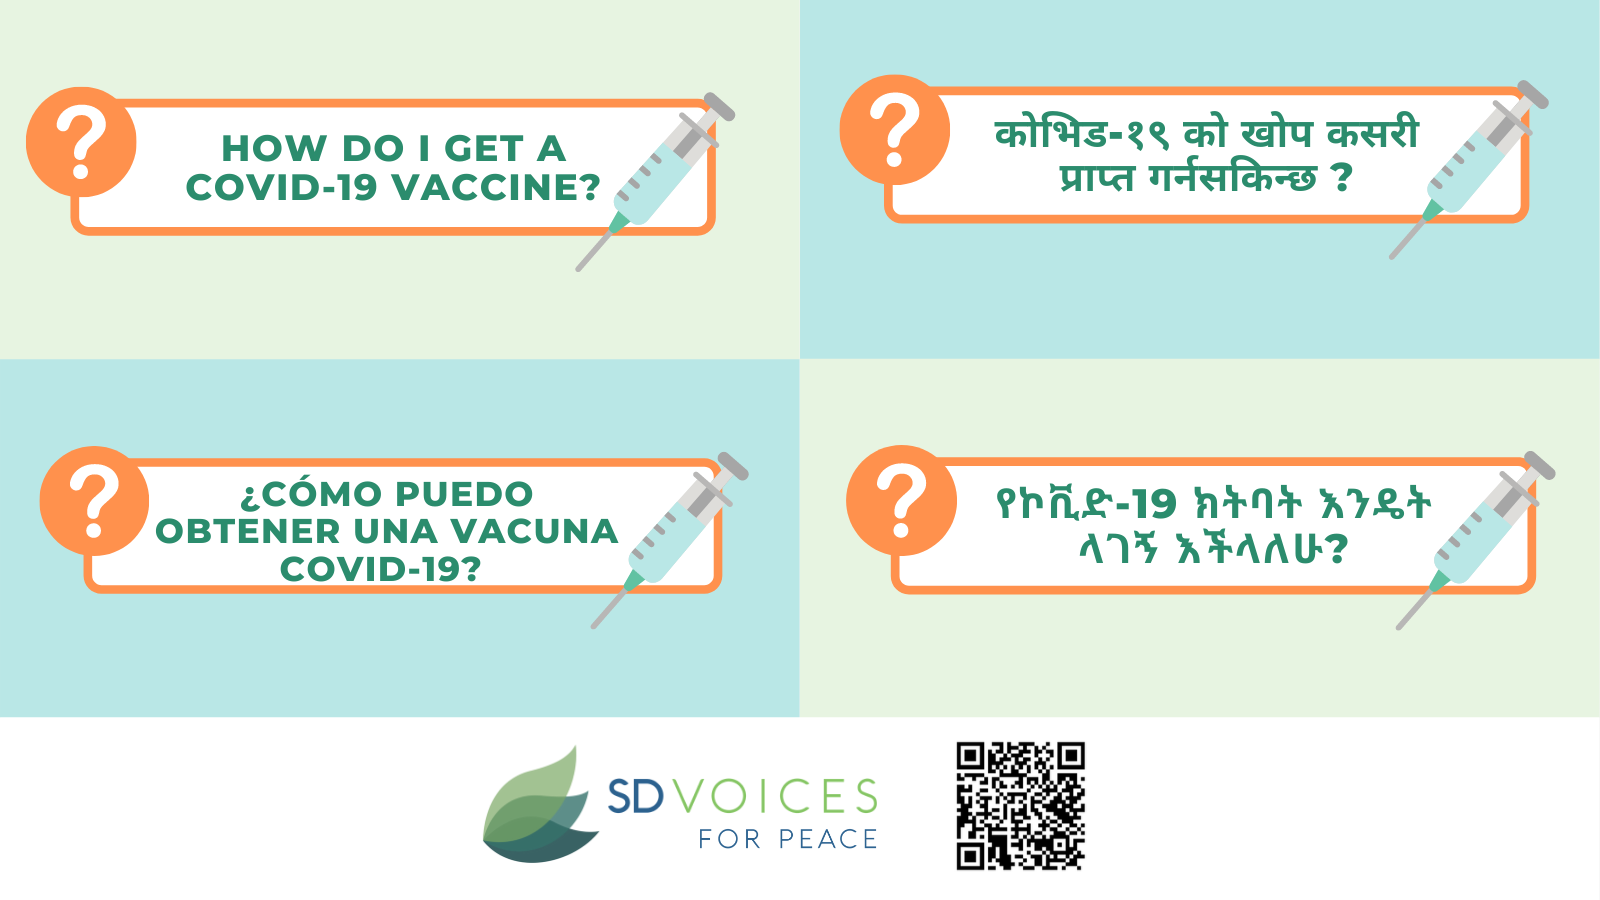 SD-Voices-for-peace-covid-vaccine.png